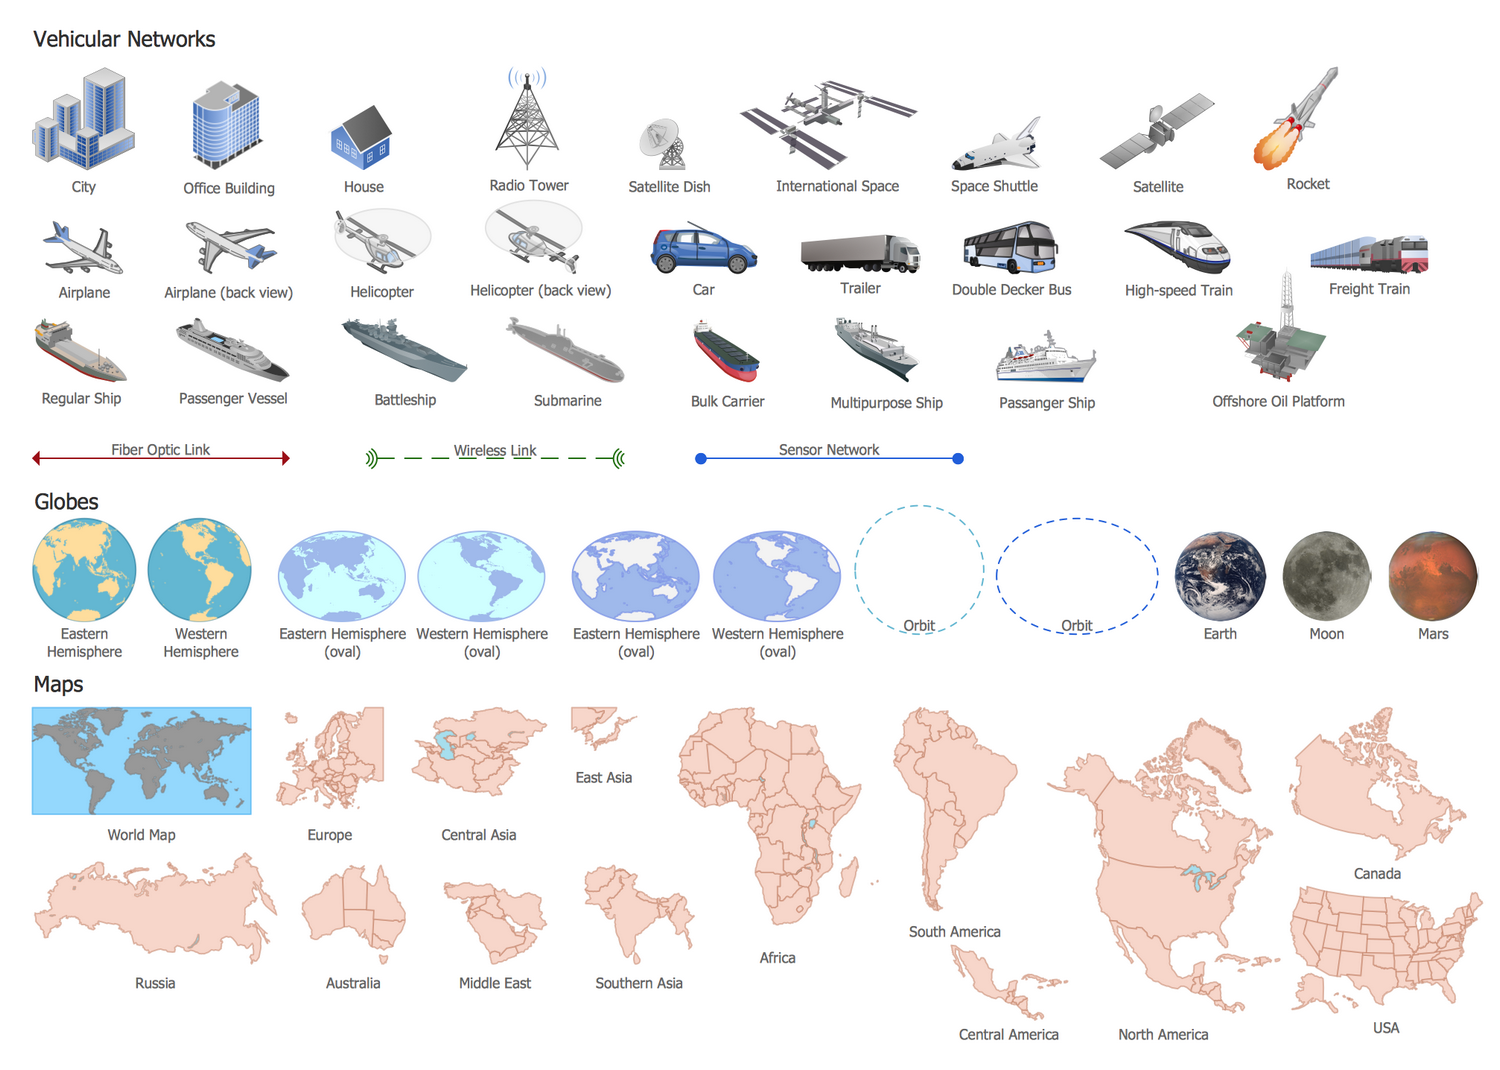 Global Vehicular Networks Objects